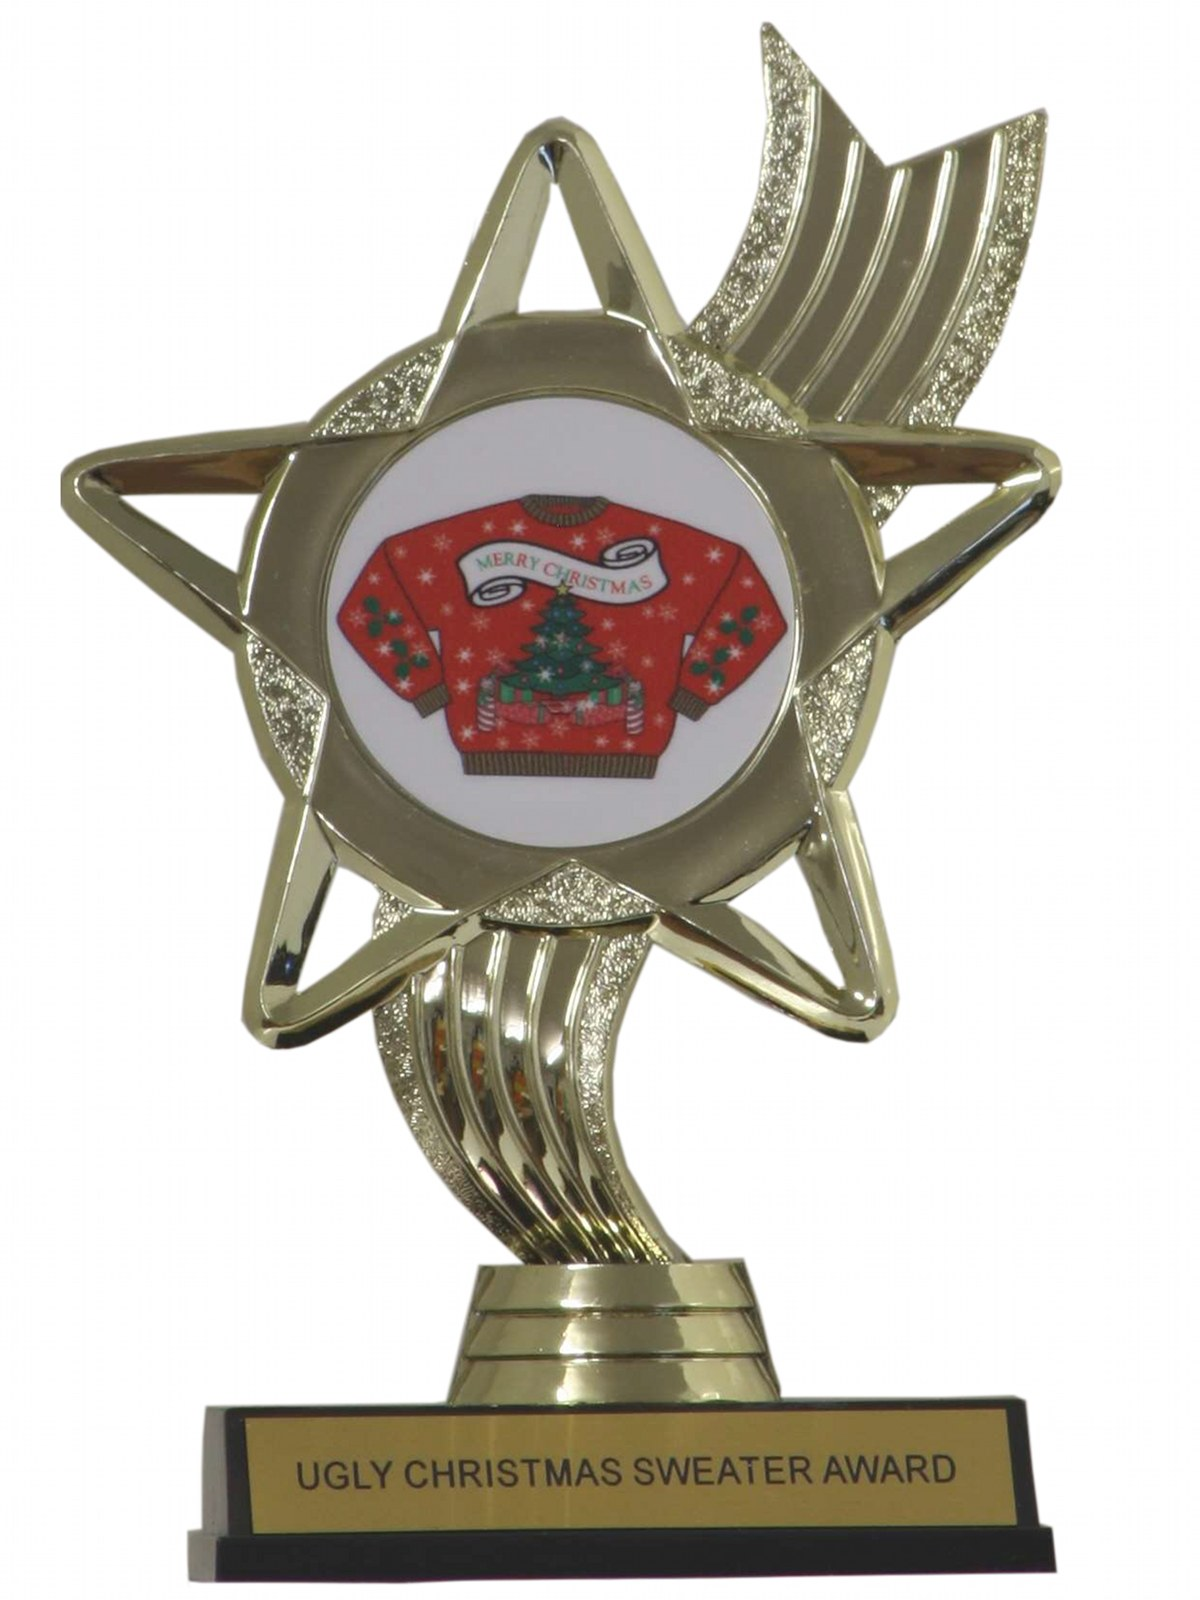 UGLY CHRISTMAS SWEATER AWARD TROPHY Unisex Ugly Christmas Sweater Trophy Award $12.95 Not in stock. Item No. 200781